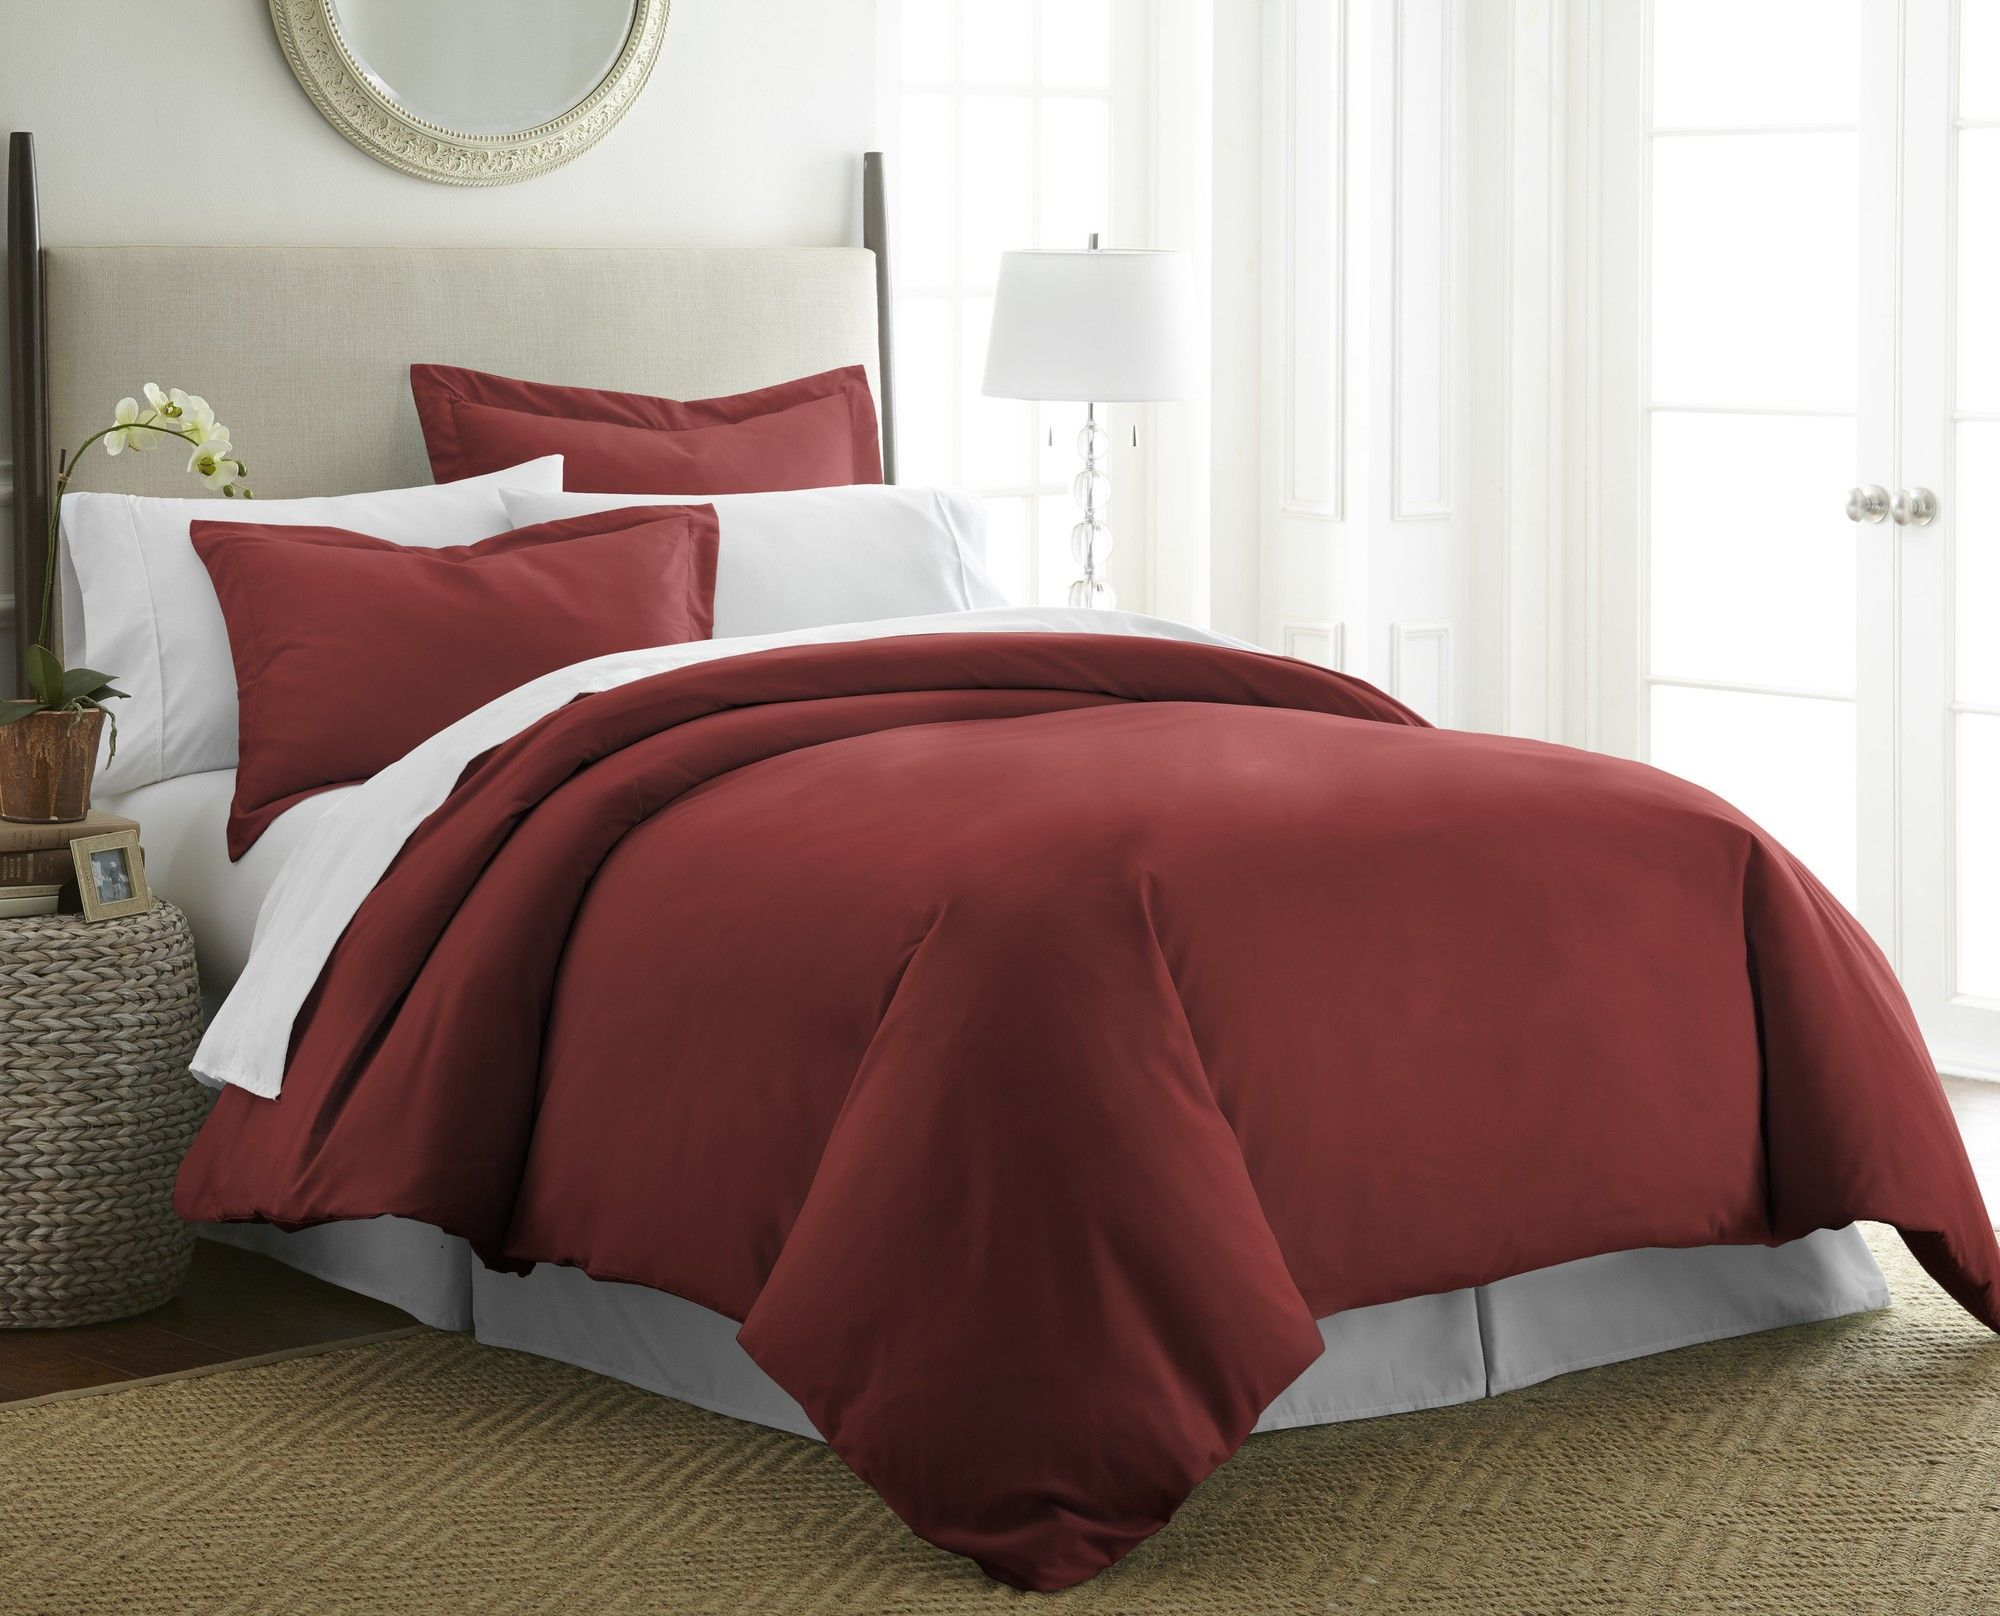 Simply Soft Duvet Cover Set